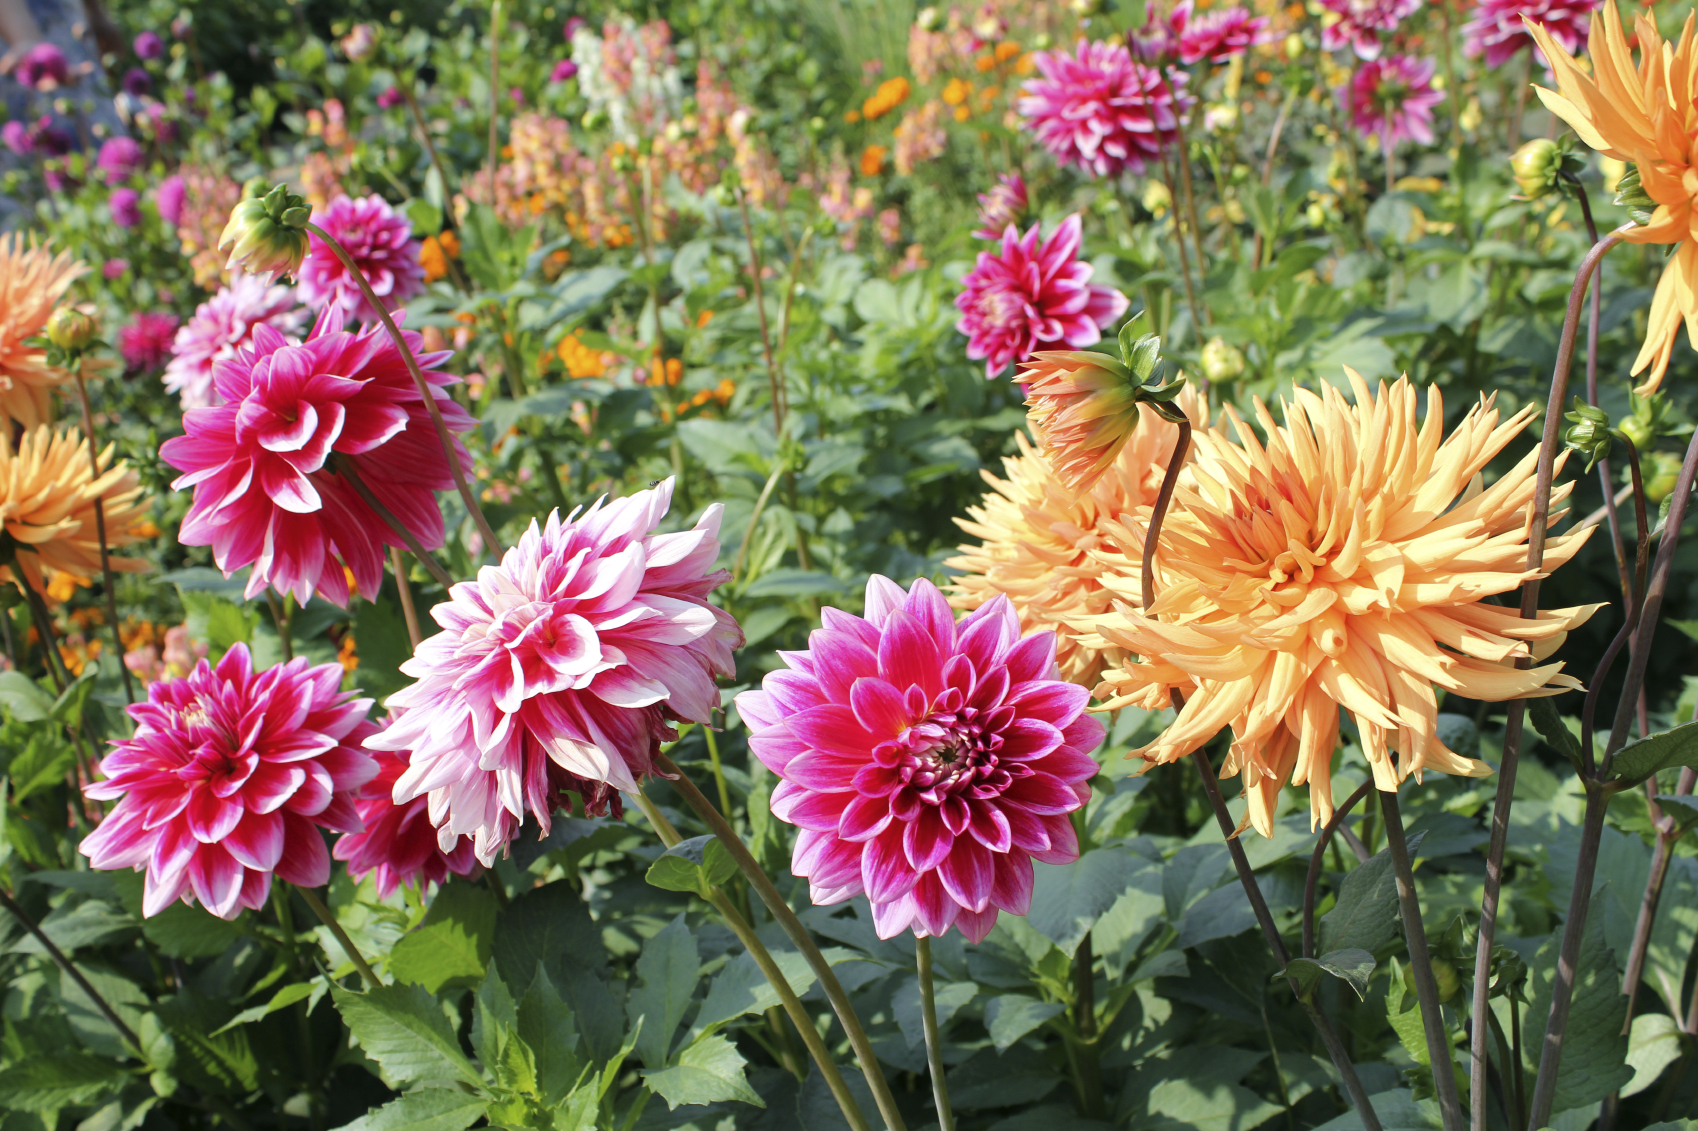 Dahlia flowers and Google search